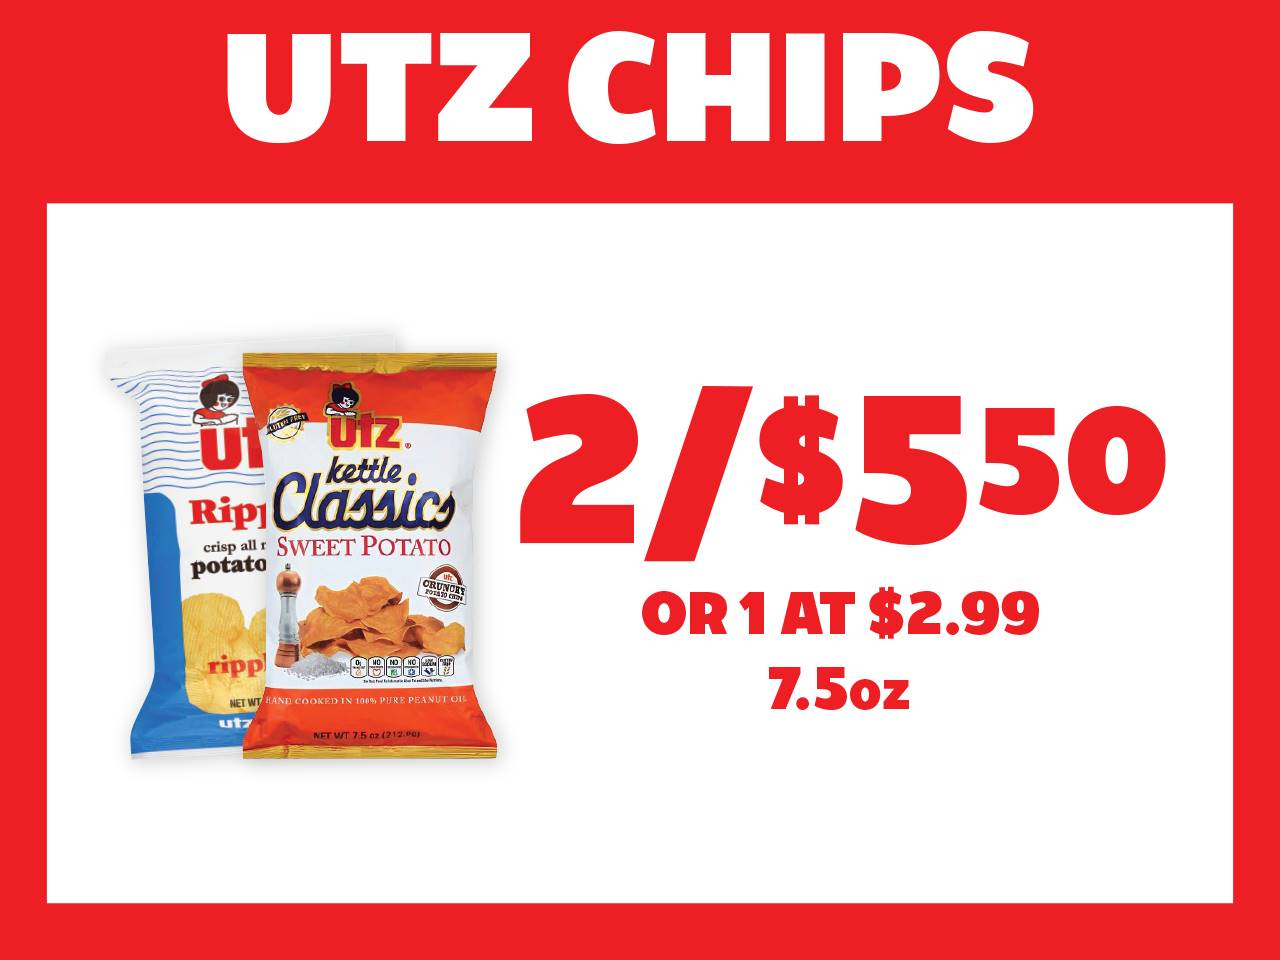 2 7.5oz Utz Chips for $5.50 or 1 at $2.99